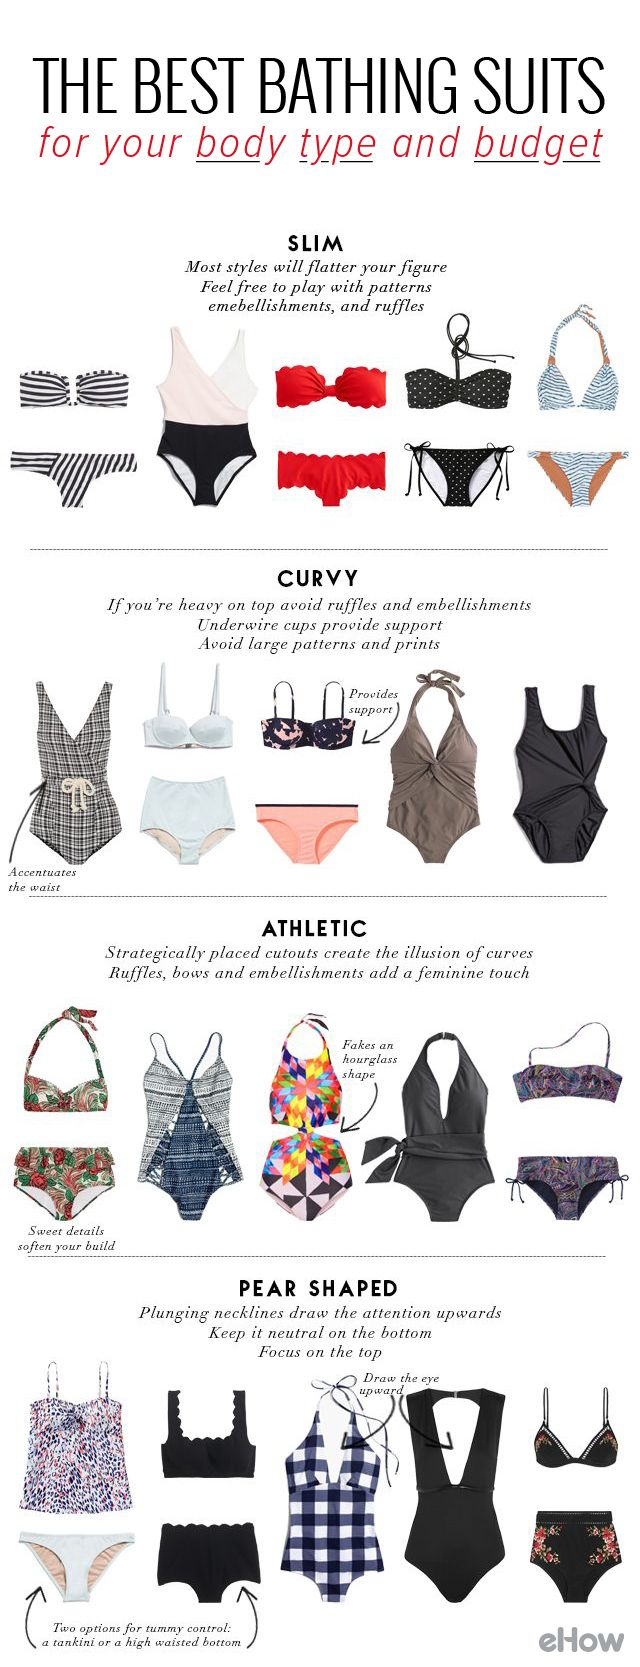 How to dress an apple shaped figure ehow - The best bathing suits for your body type and budget